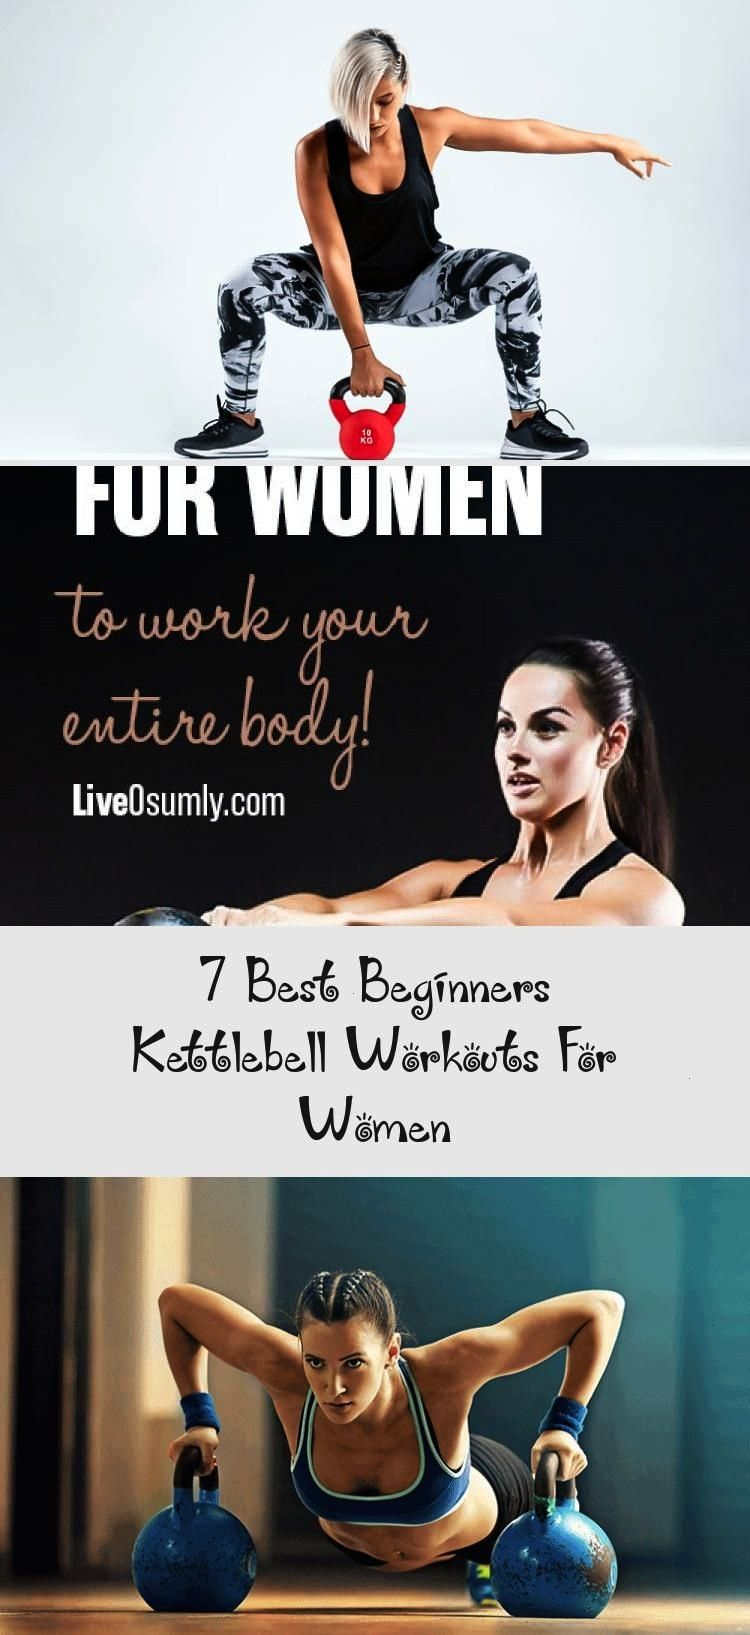 #womensfitnessillustration #womensfitnessclothes #kettlebellworkouts #womensfitnessback #womensfitne...